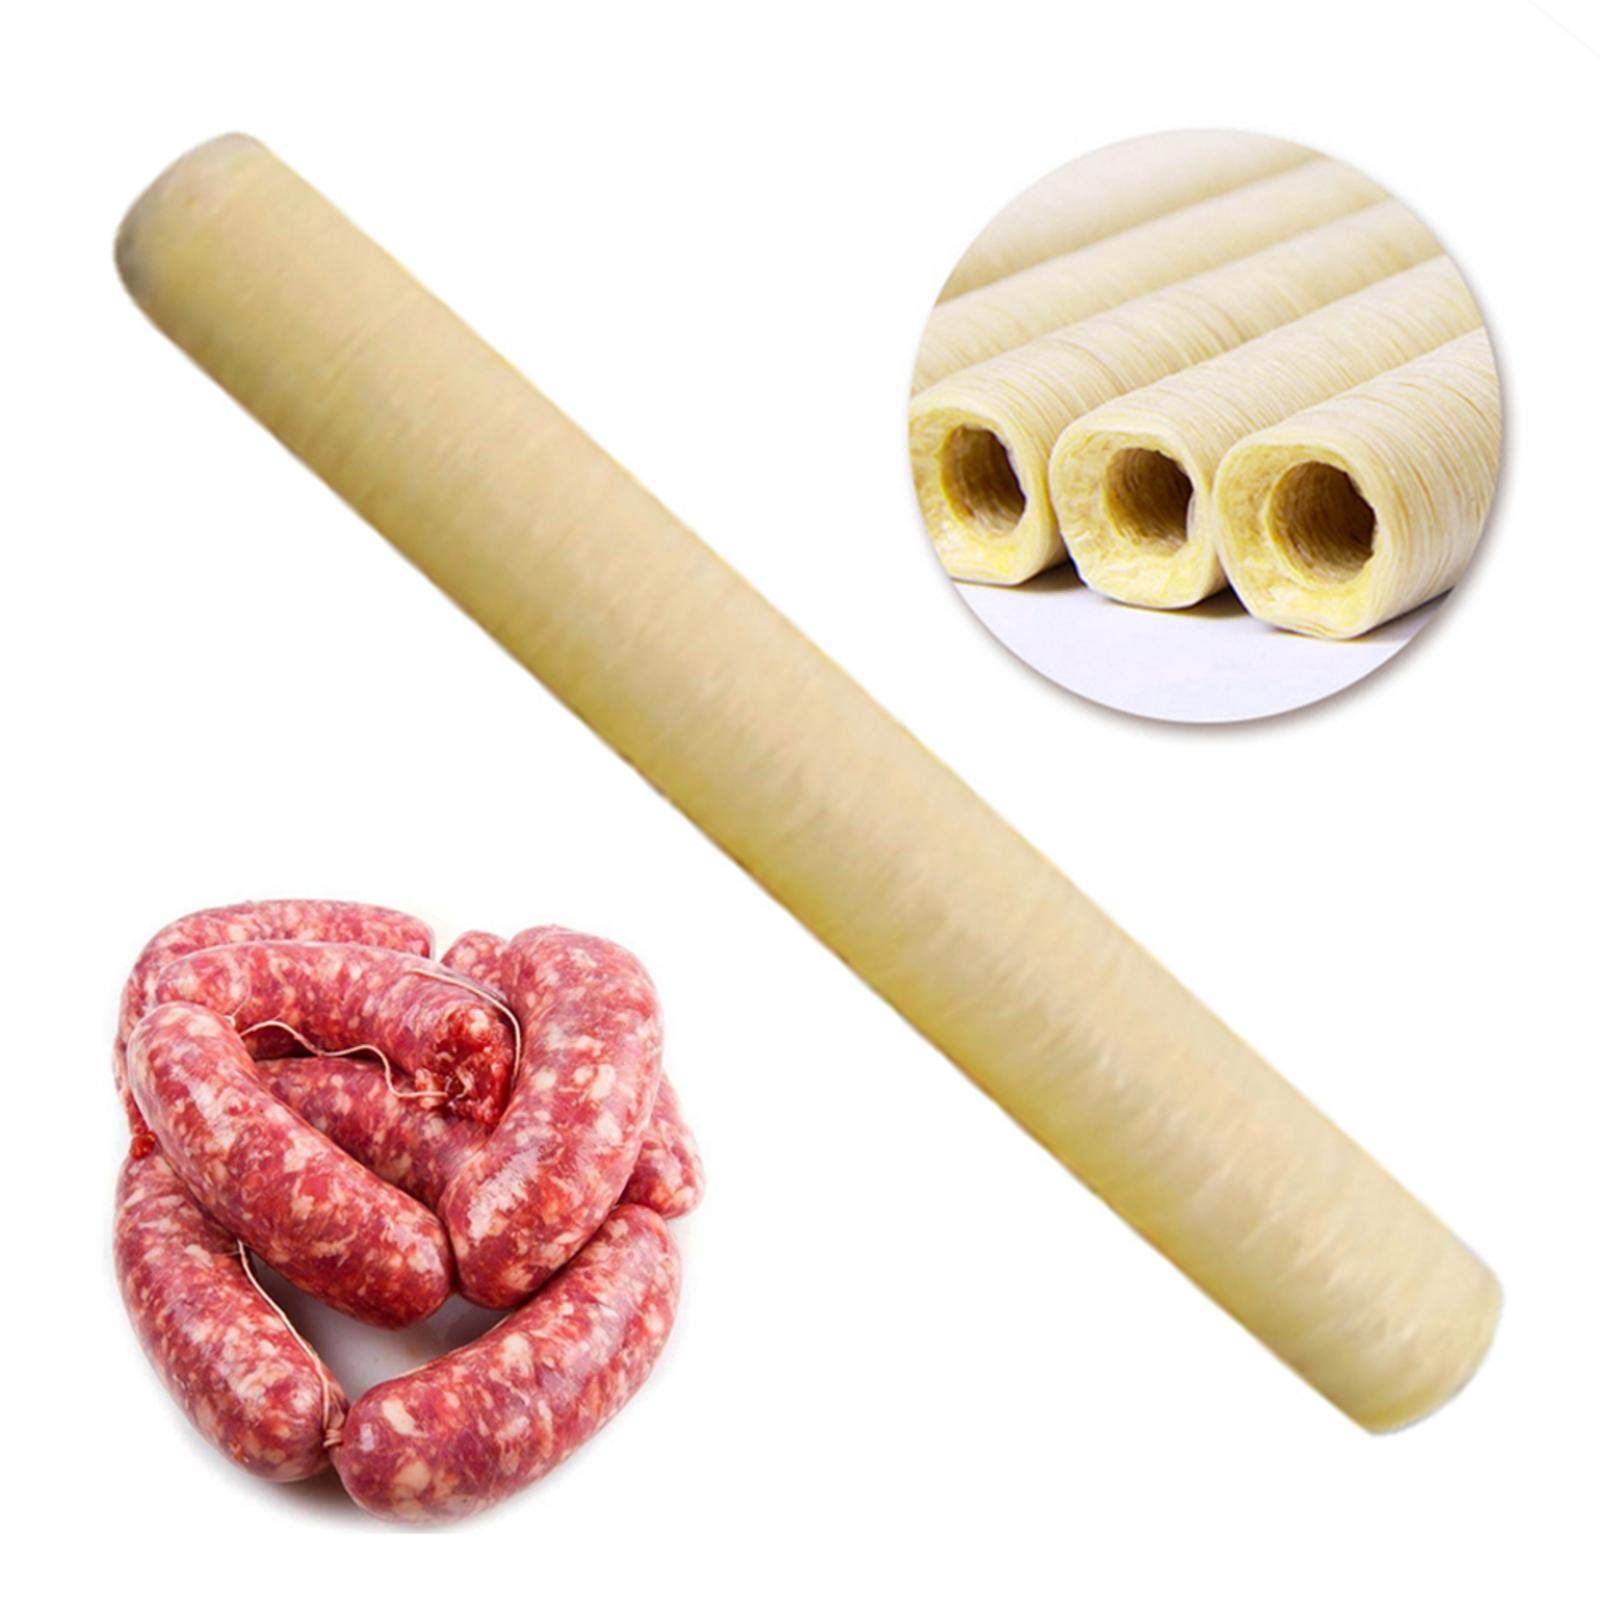 Liteness (14M X 20MM) Sausage Casing Ham Hot Dog Collagen Casing Wrappinging, Edible Drying Sausage Casing Collagen Sausage Casings For Flavorous Homemade Sausages Ham Soy Protein Casing Durable